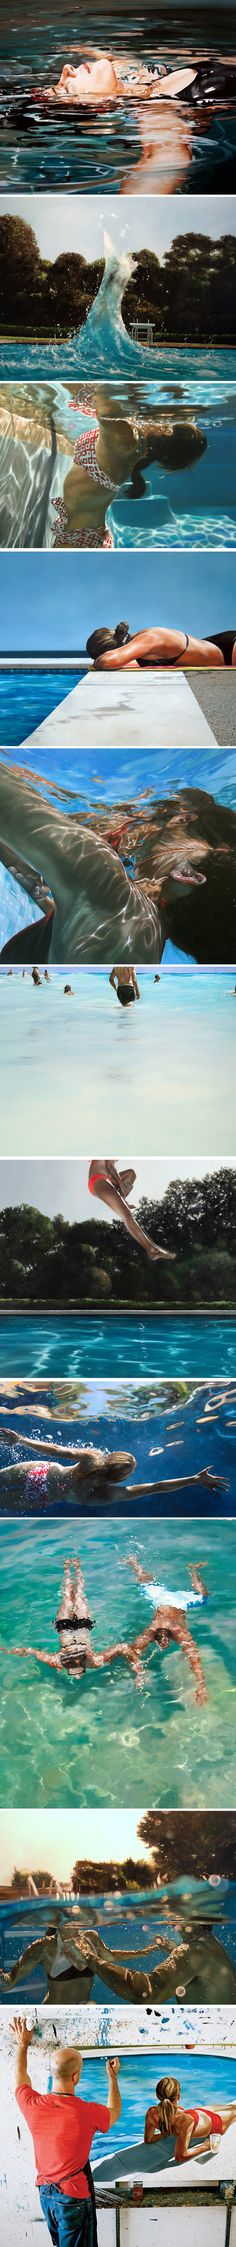 Hyper-Realistic Paintings by Eric Zener I can't get enough of hyper realistic art Eric Zener, Hyper Realistic Paintings, Realistic Drawings, Water Art, Water Water, Realism Art, Banksy, Love Art, Amazing Art